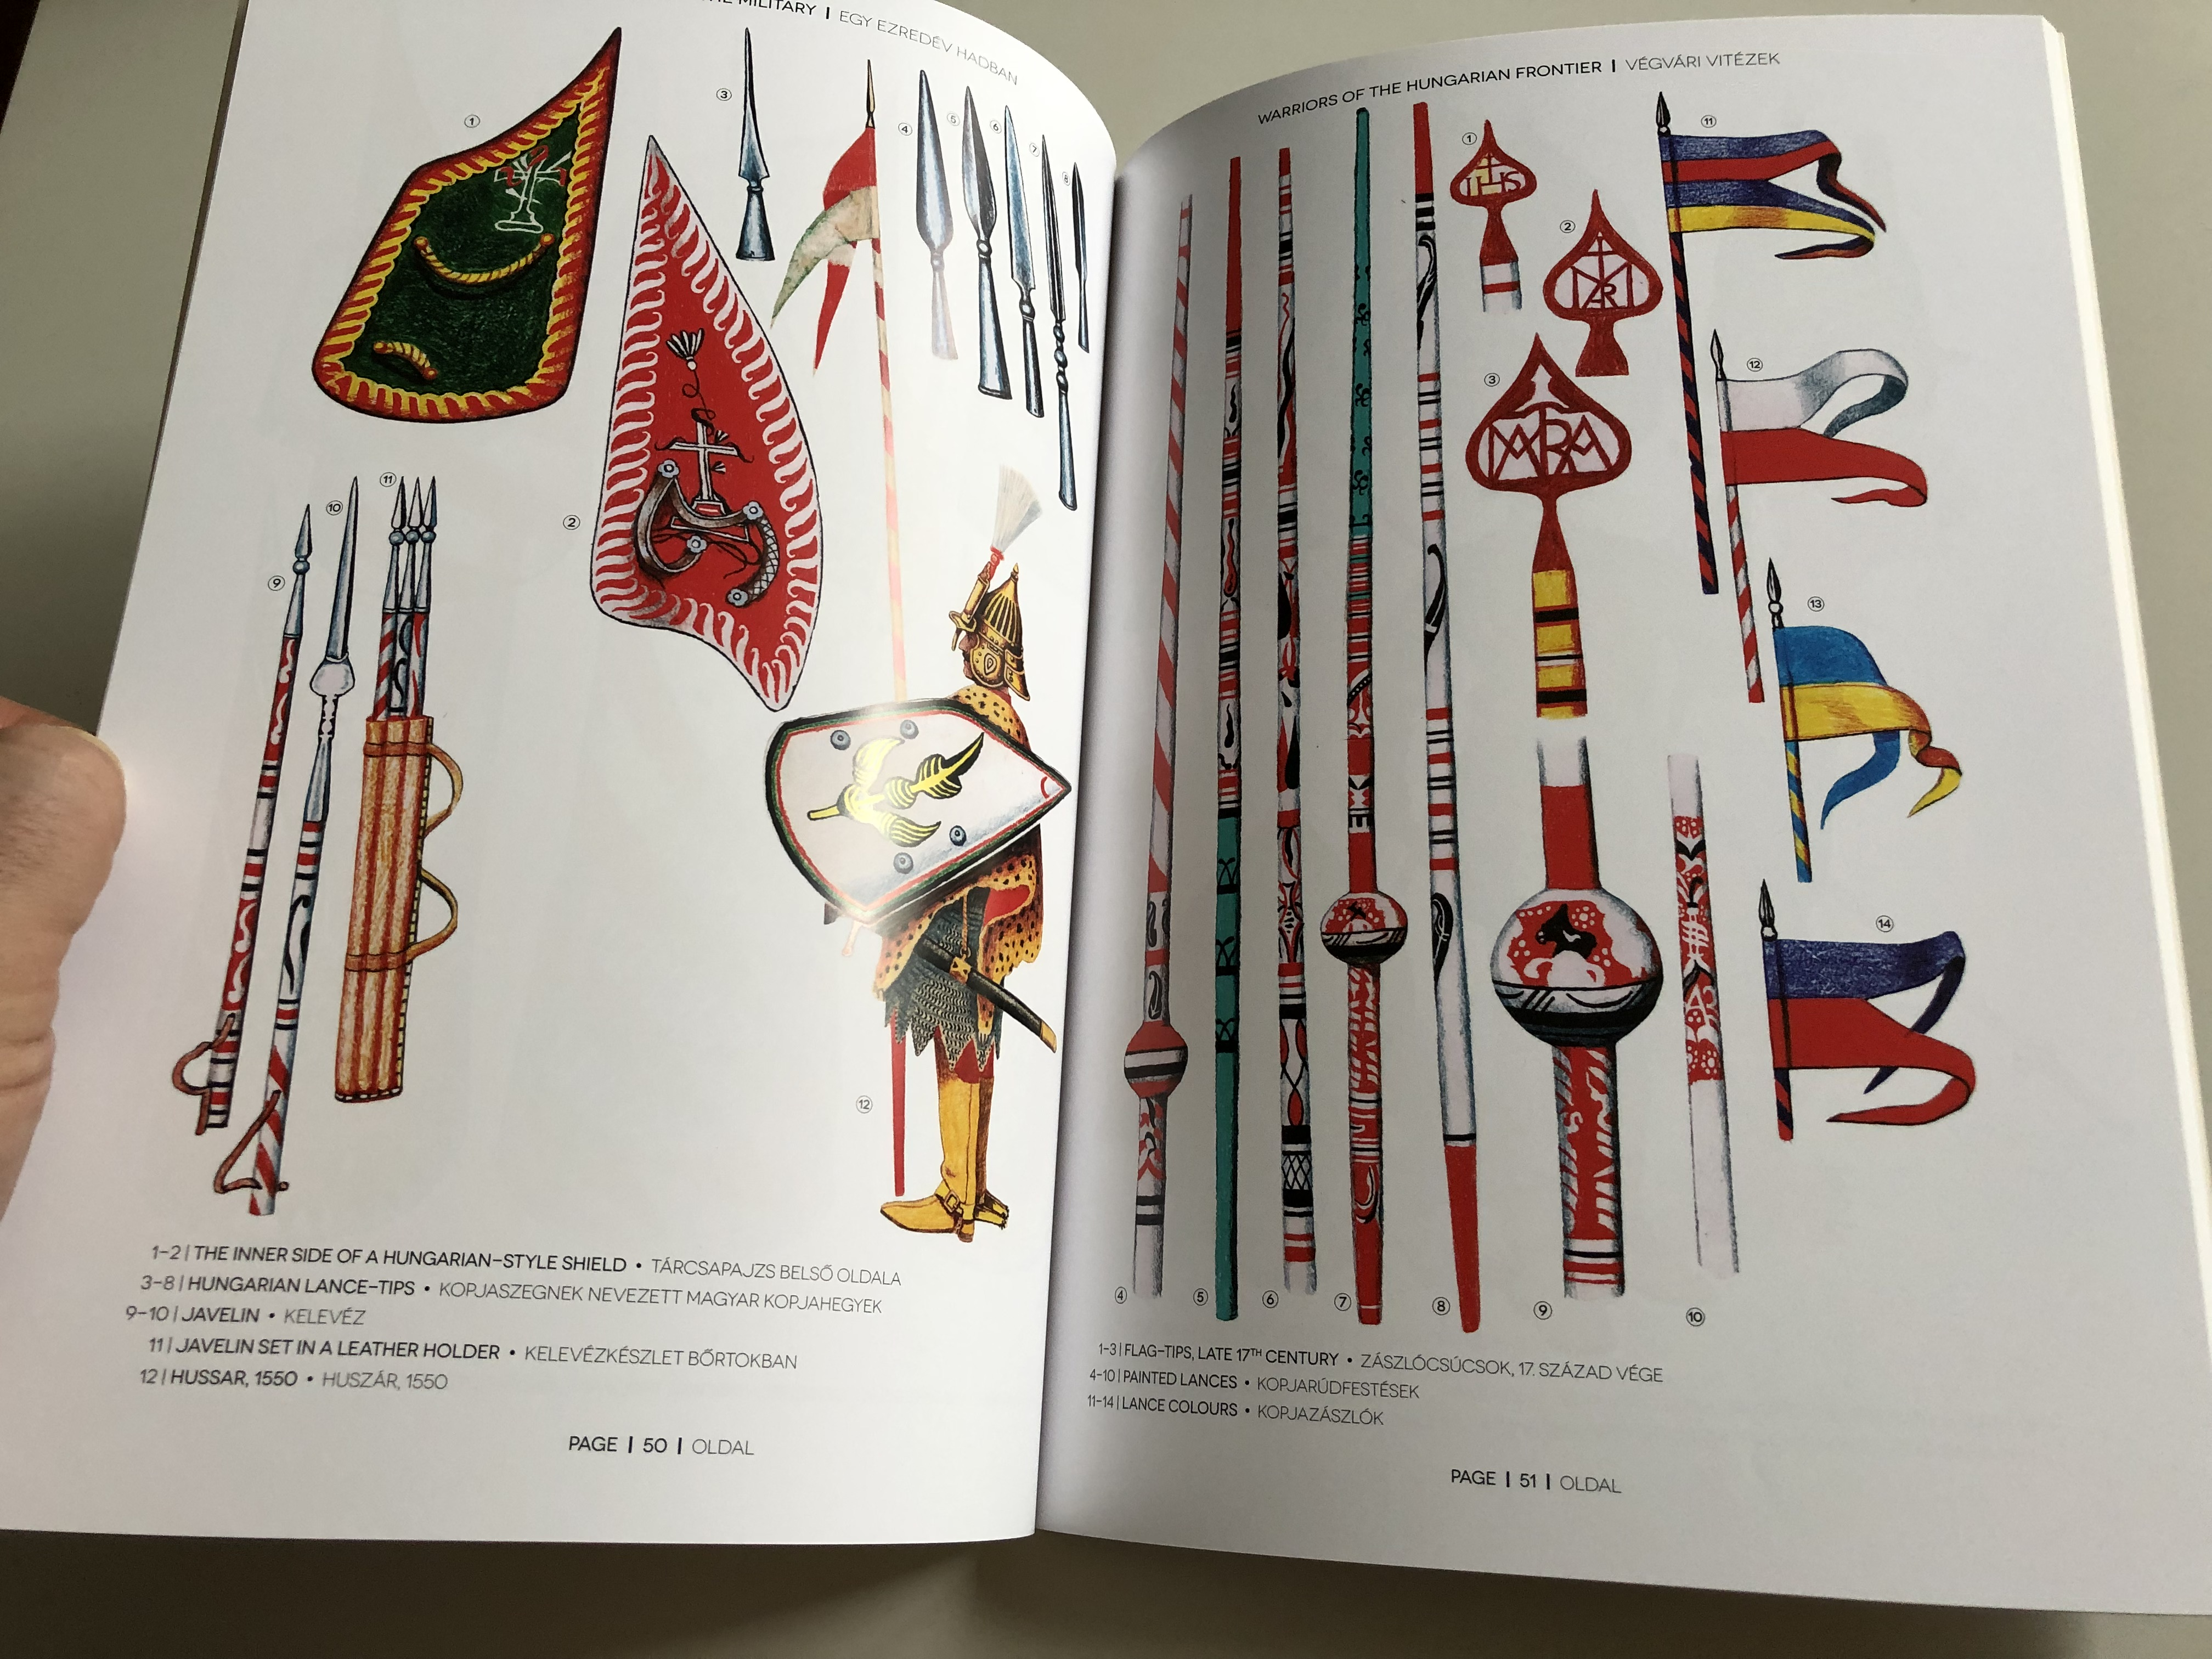 warriors-of-the-hungarian-frontier-1526-1686-by-gy-z-somogyi-v-gv-ri-vit-zek-1526-1686-a-millennium-in-the-military-egy-ezred-v-hadban-paperback-2014-hm-zr-nyi-8-.jpg